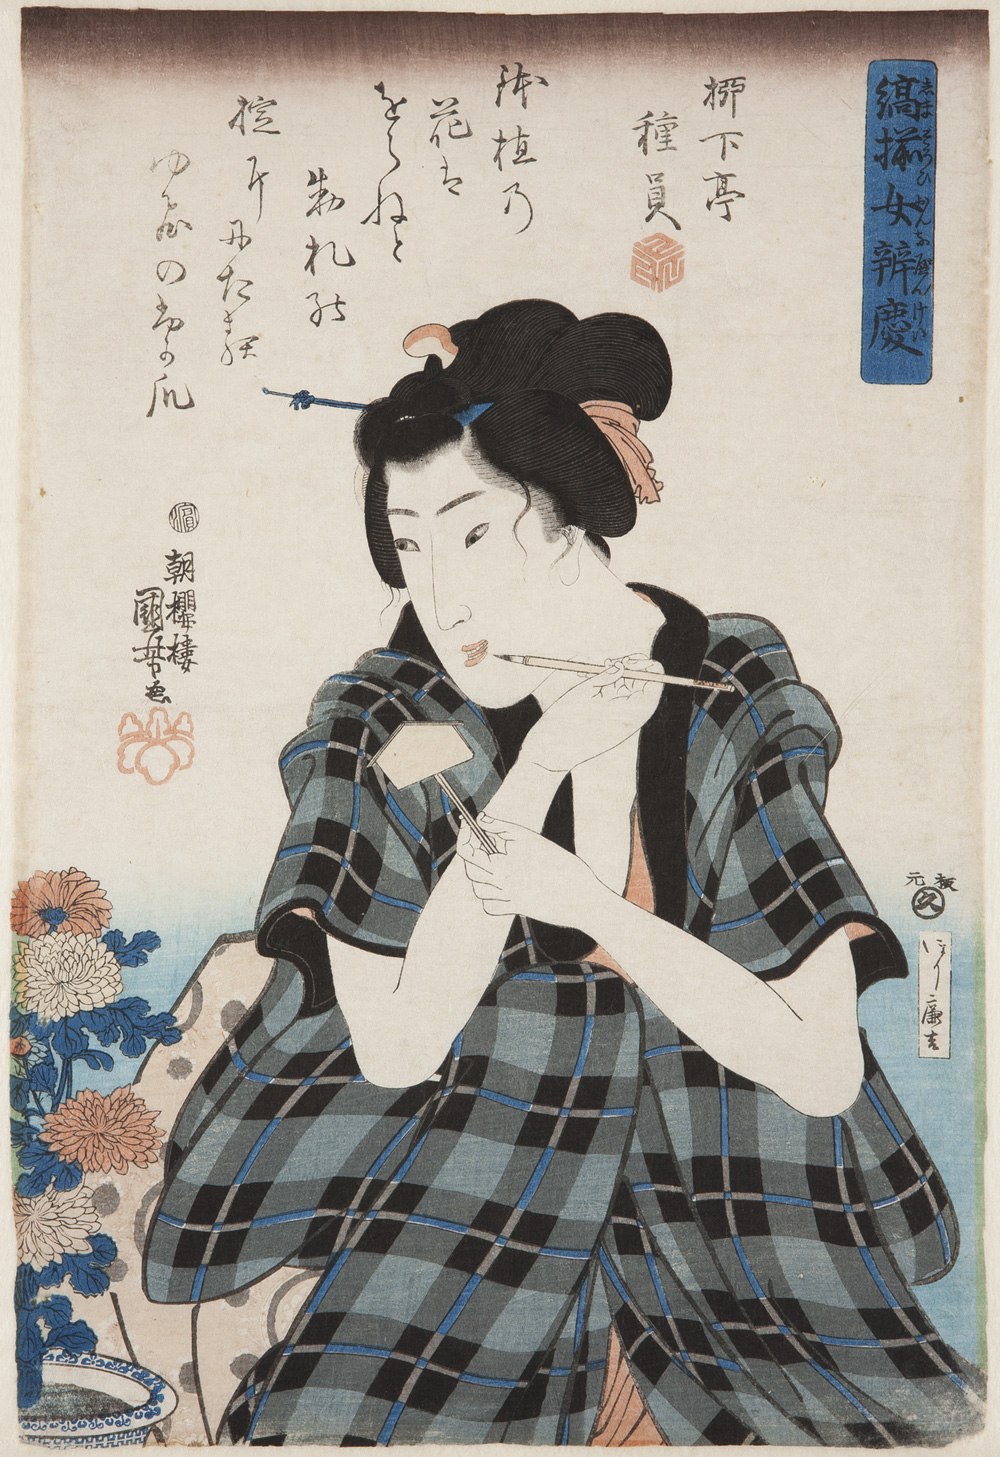 Japanese print of a person dressed in traditional clothes holding a pen and looking at a pot of flowers.